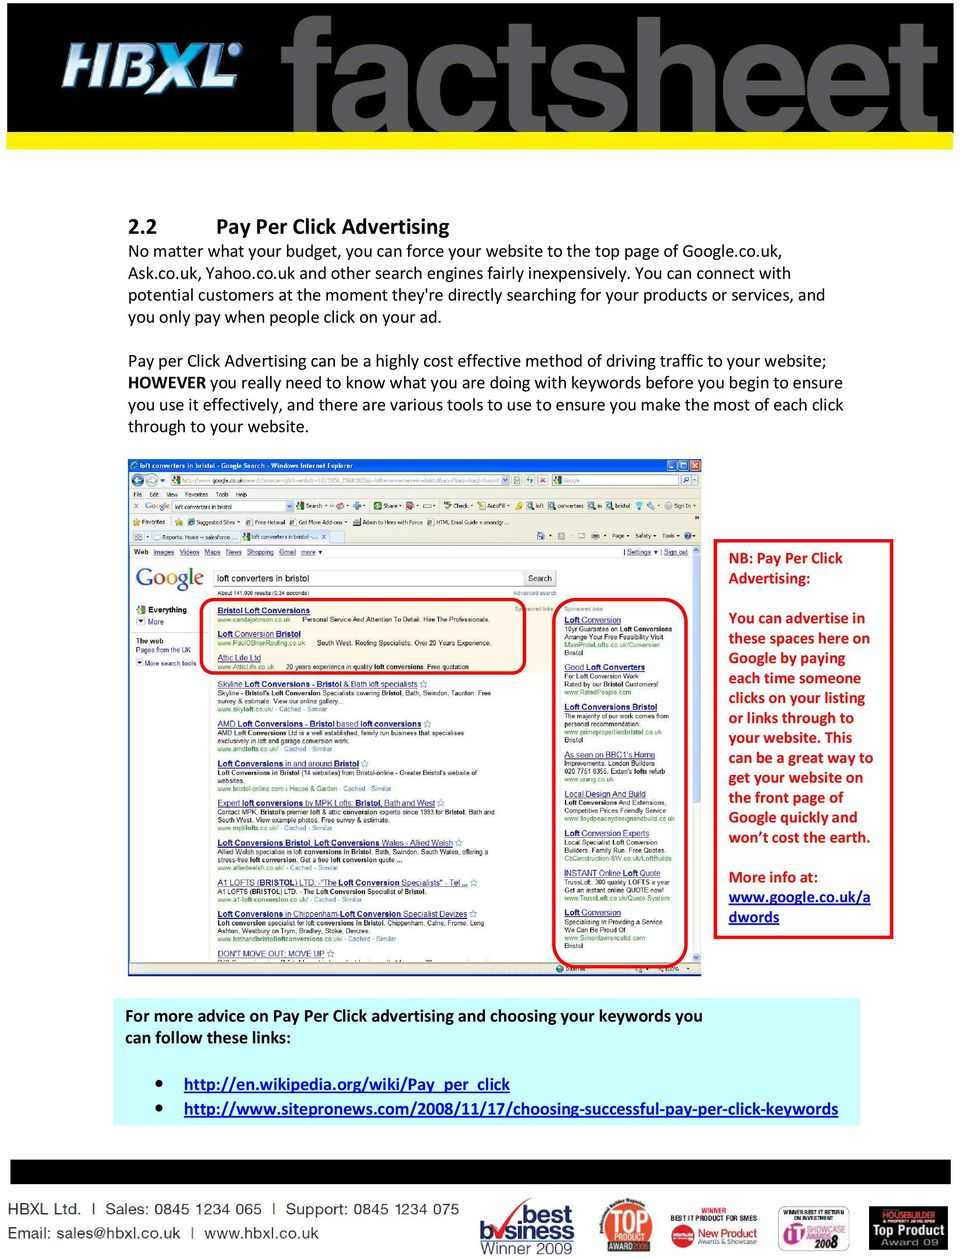 Pay per Click Advertising can be a highly cost effective method of driving traffic to your website; HOWEVER you really need to know what you are doing with keywords before you begin to ensure you use